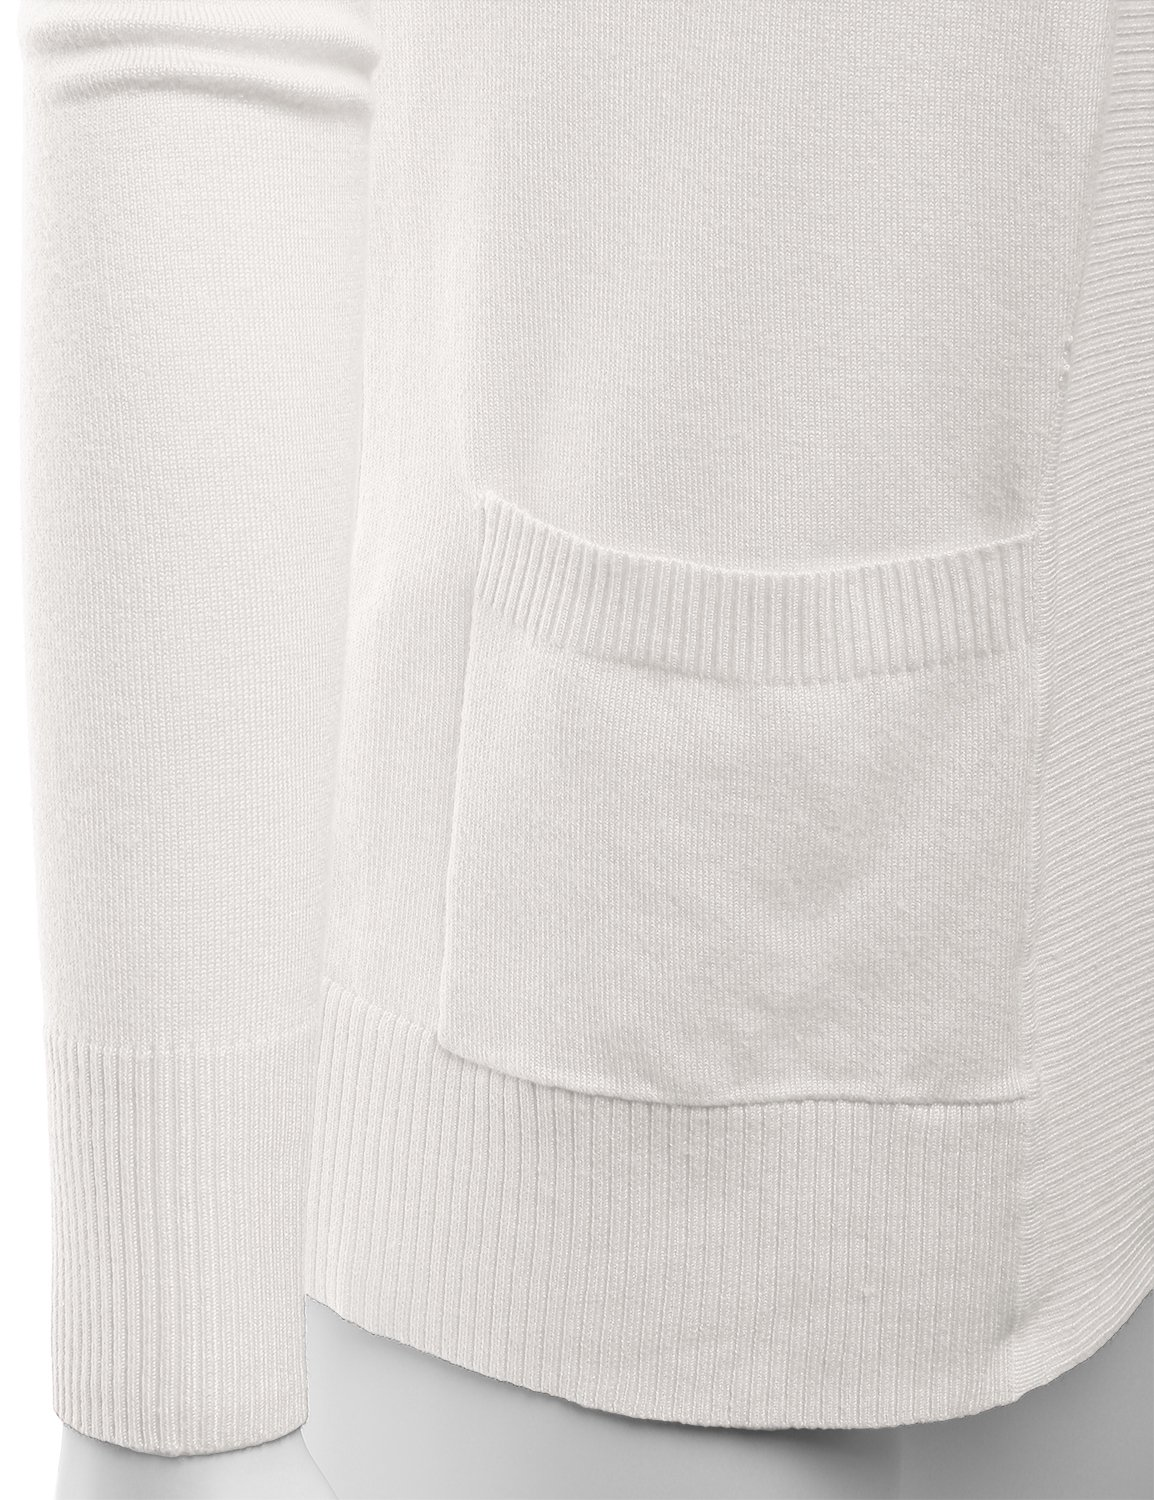 LALABEE Women's Open Front Pockets Knit Long Sleeve Sweater Cardigan-Ivory-L by LALABEE (Image #4)